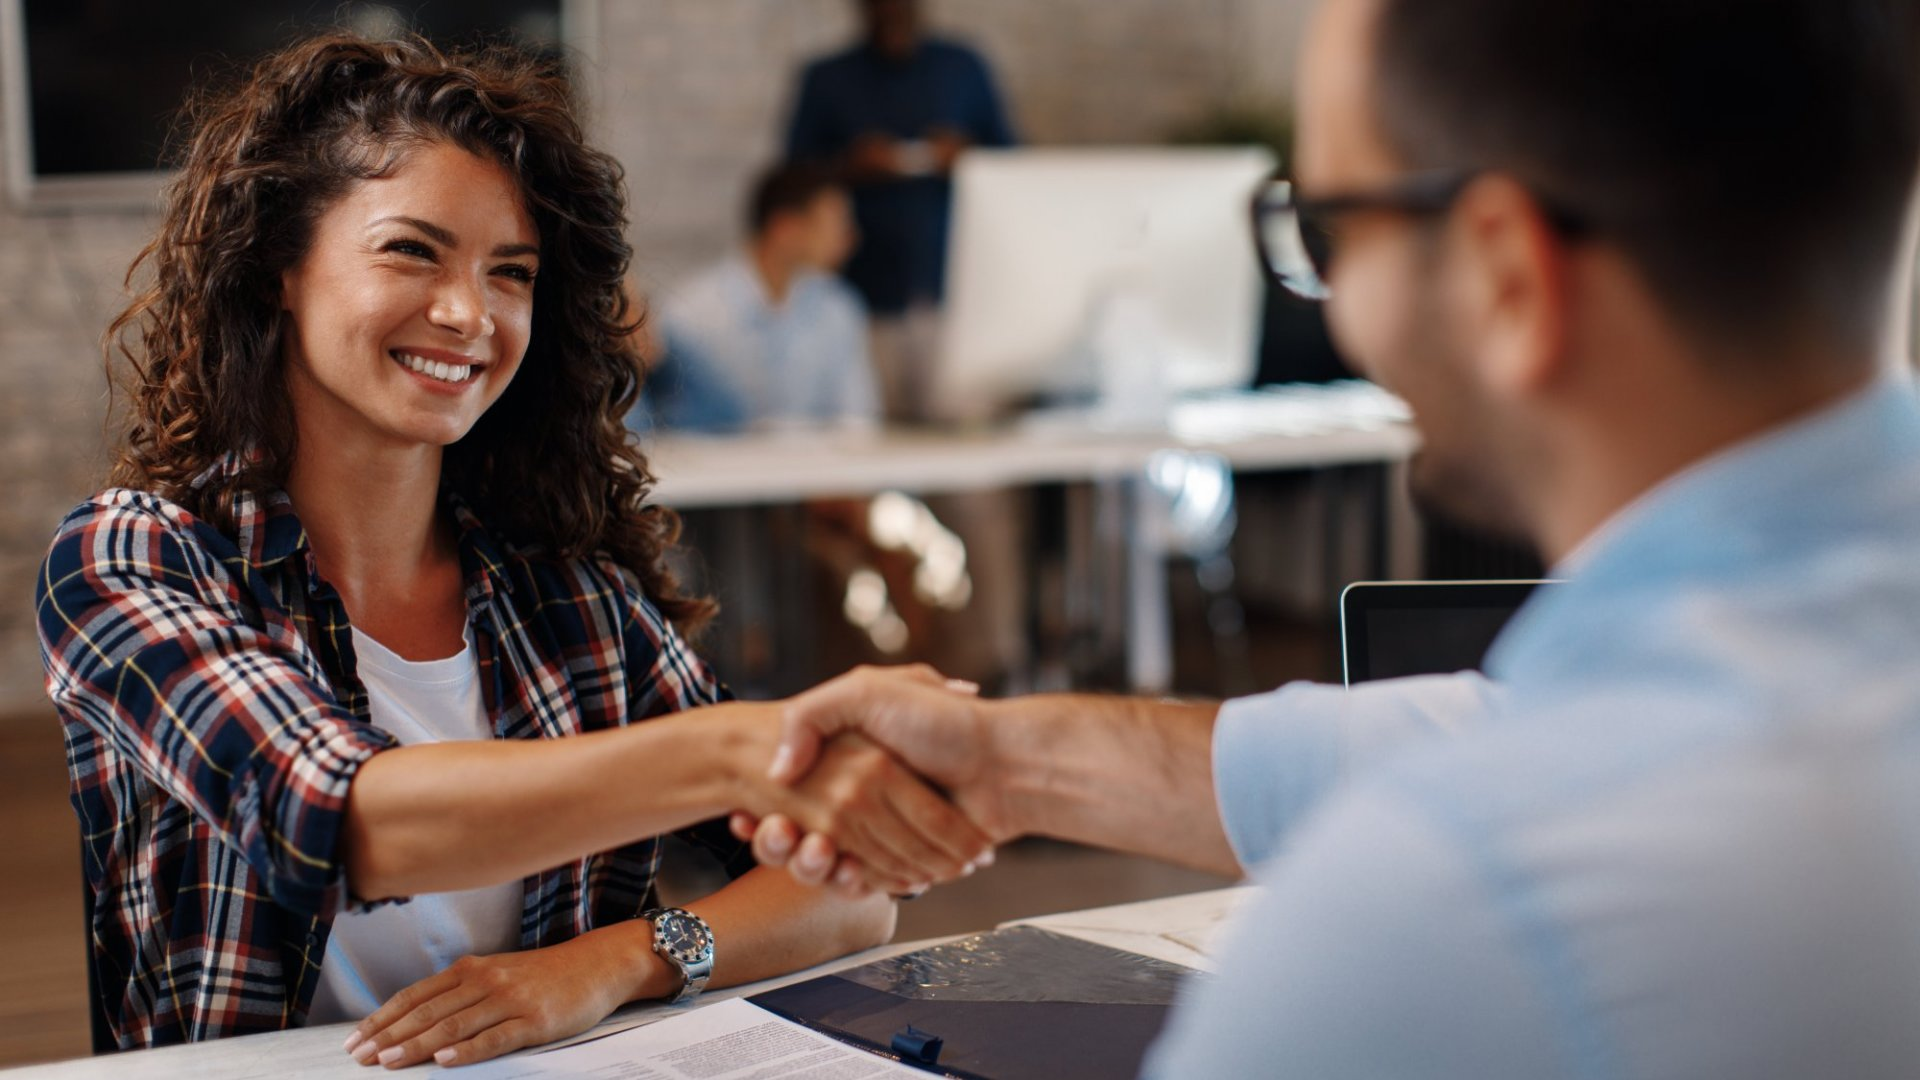 How to Recruit Top Talent in a Tight Labor Market